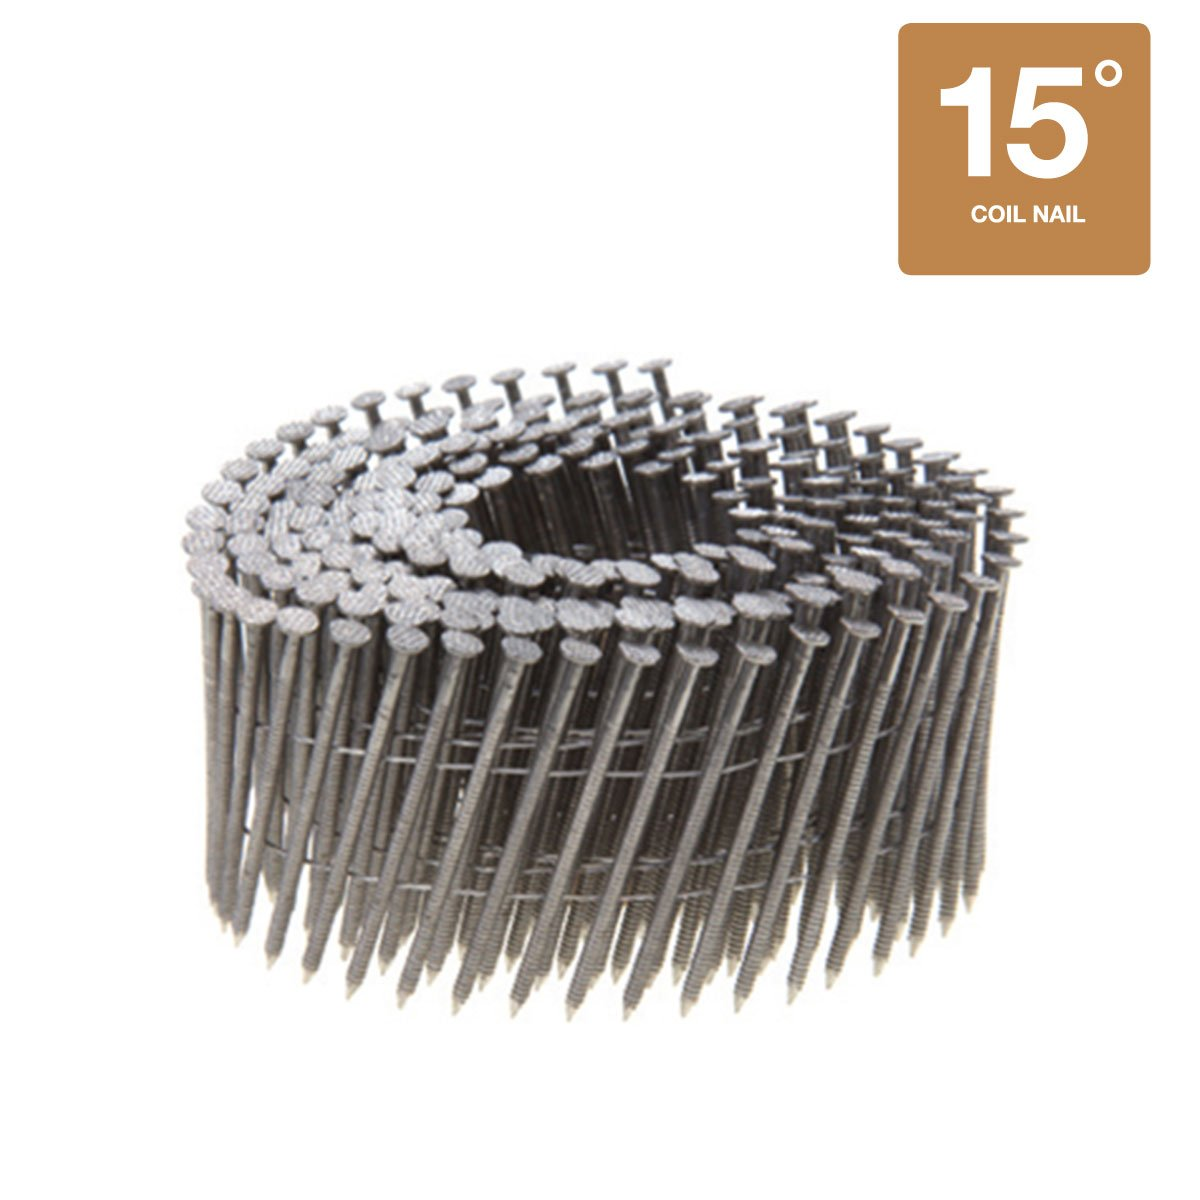 15 Degree Wire Coil Collated Nails - 304 Stainless Steel - 3600 Count Box (1-1/4'' x 0.090'' Siding Nails)